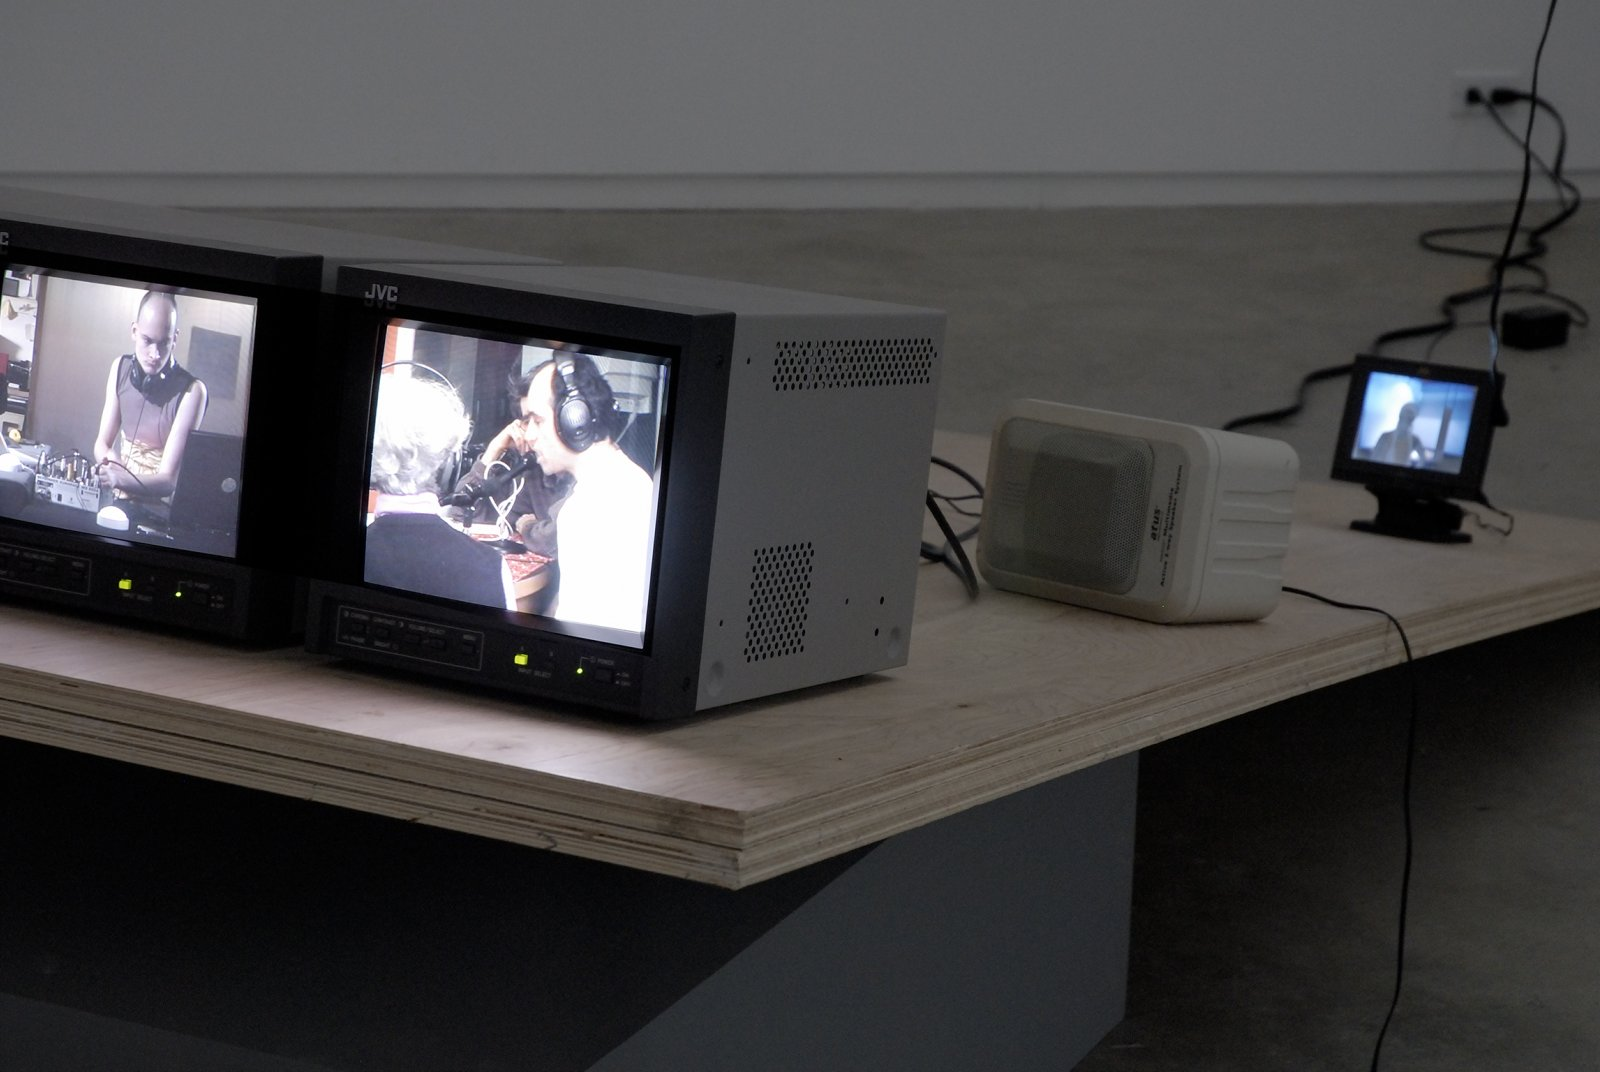 Judy Radul, Five Pieces of Relation: Attention to the people in the plaza, Use both hands to respond by ringing, Anxious causality laptop version, Animal Voices on the air, On the verge of appearing live, 2006, mixed media, 32 minutes by Judy Radul